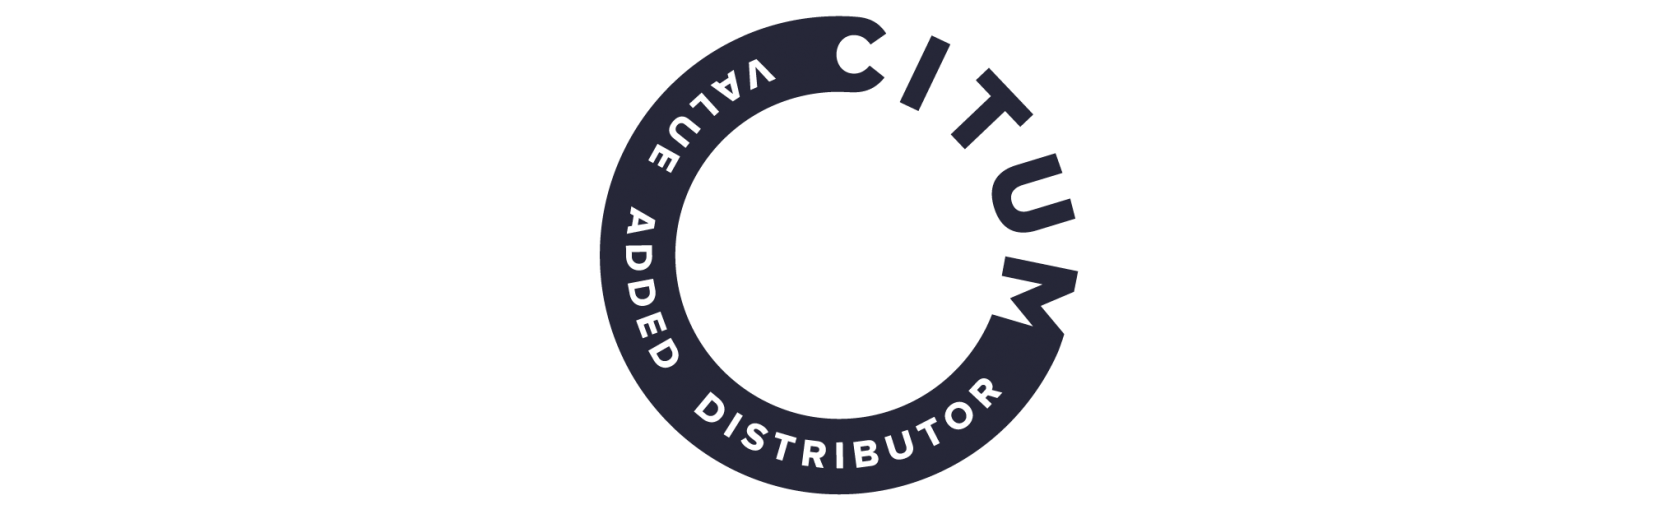 value_added_distributor_logo